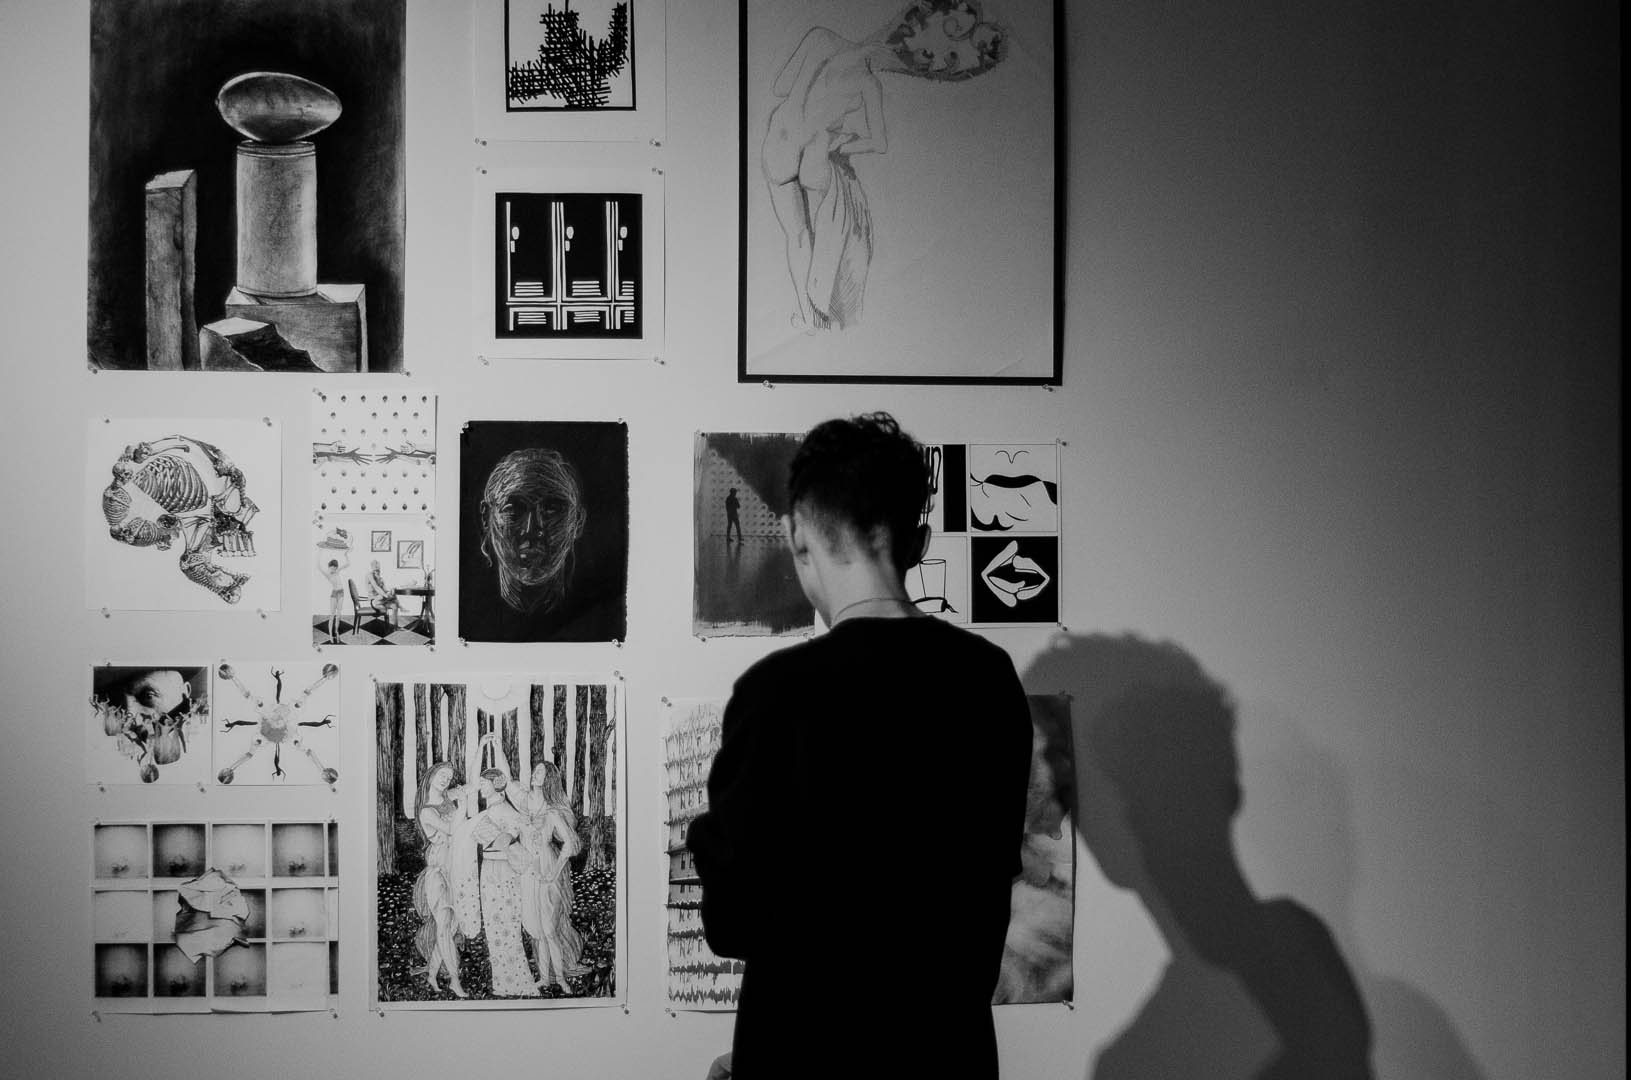 A student viewing artwork at the show. (Photo by Daniel Fremen.)